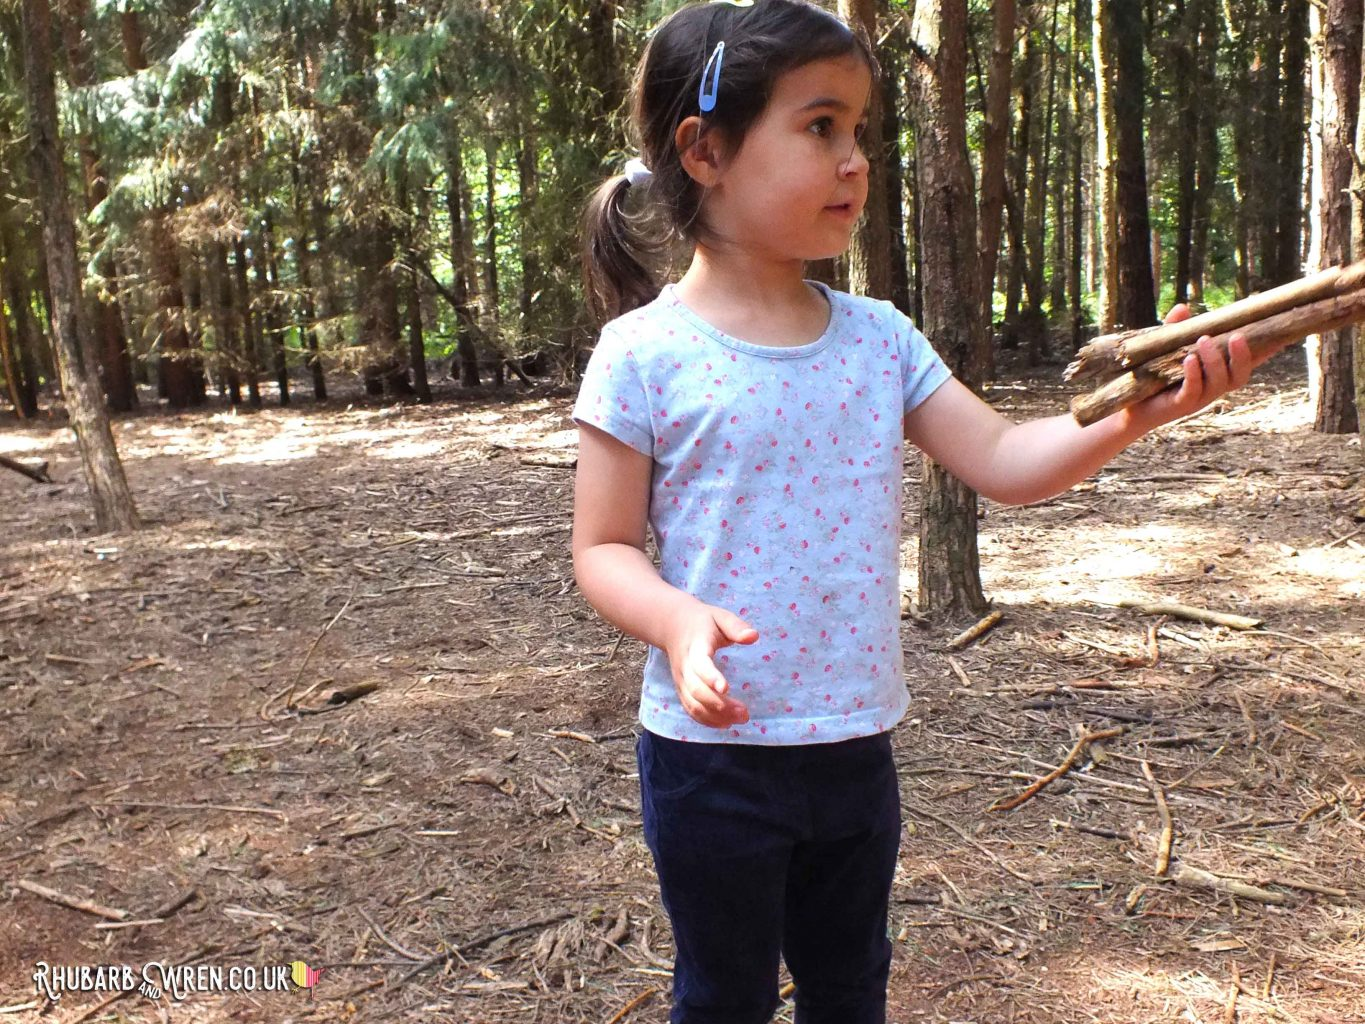 Girl picking up sticks in forest